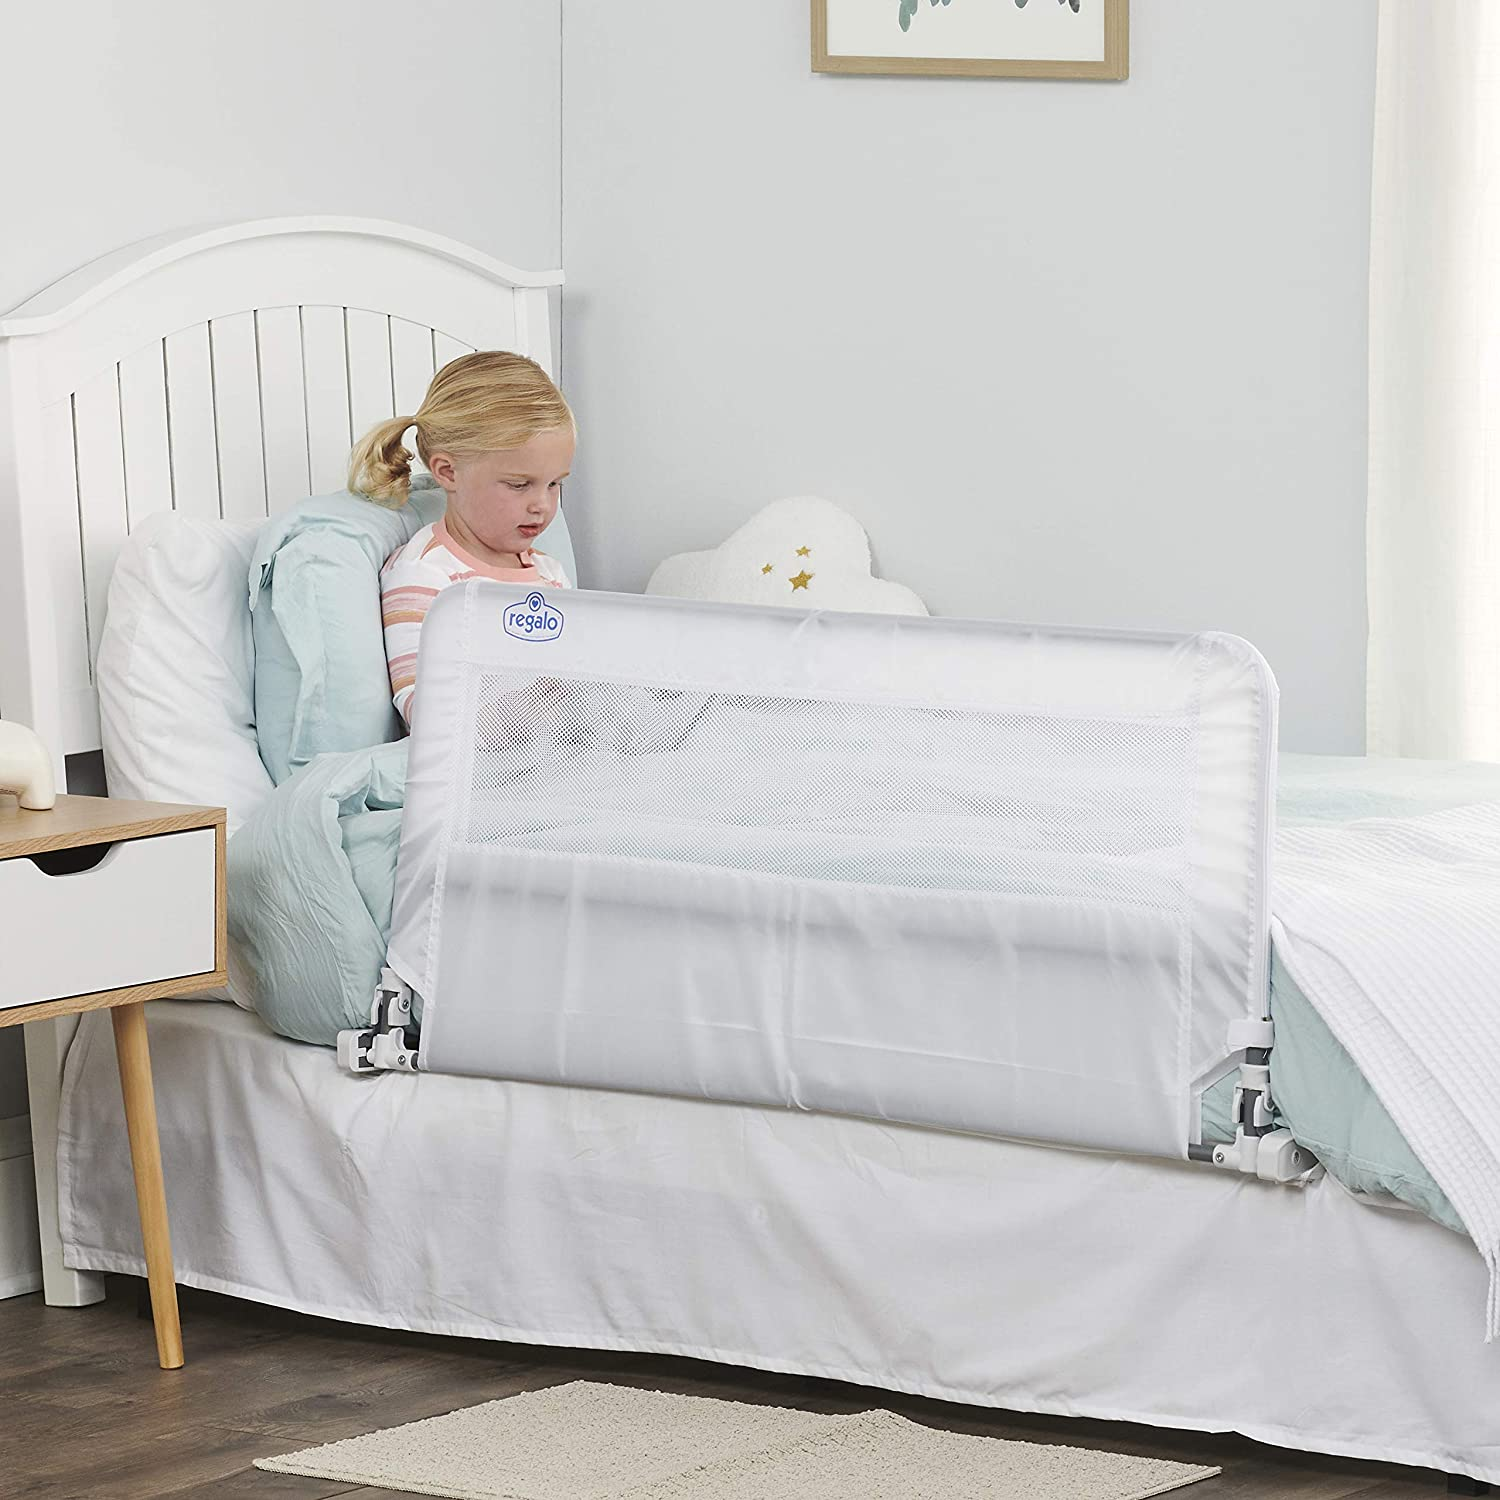 Regalo HideAway Bed Rail Guard, with Reinforced Anchor Safety System , White